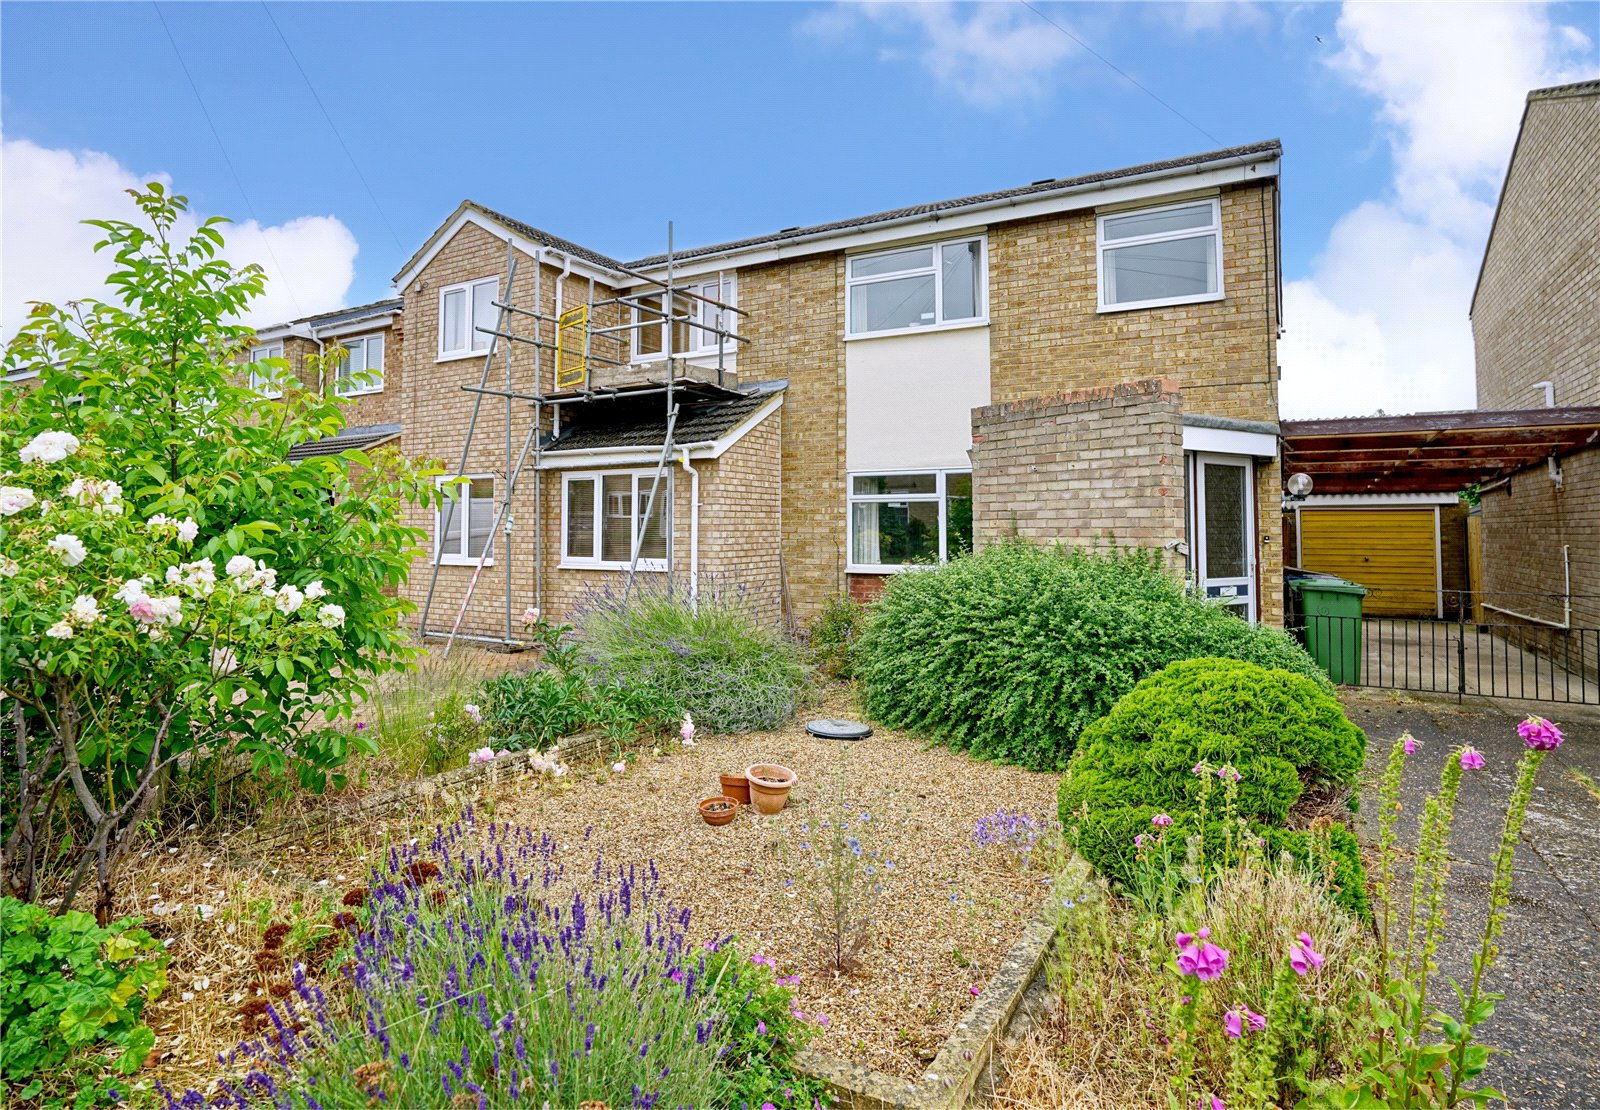 3 bed house for sale in Kenilworth Close, Eaton Socon  - Property Image 1